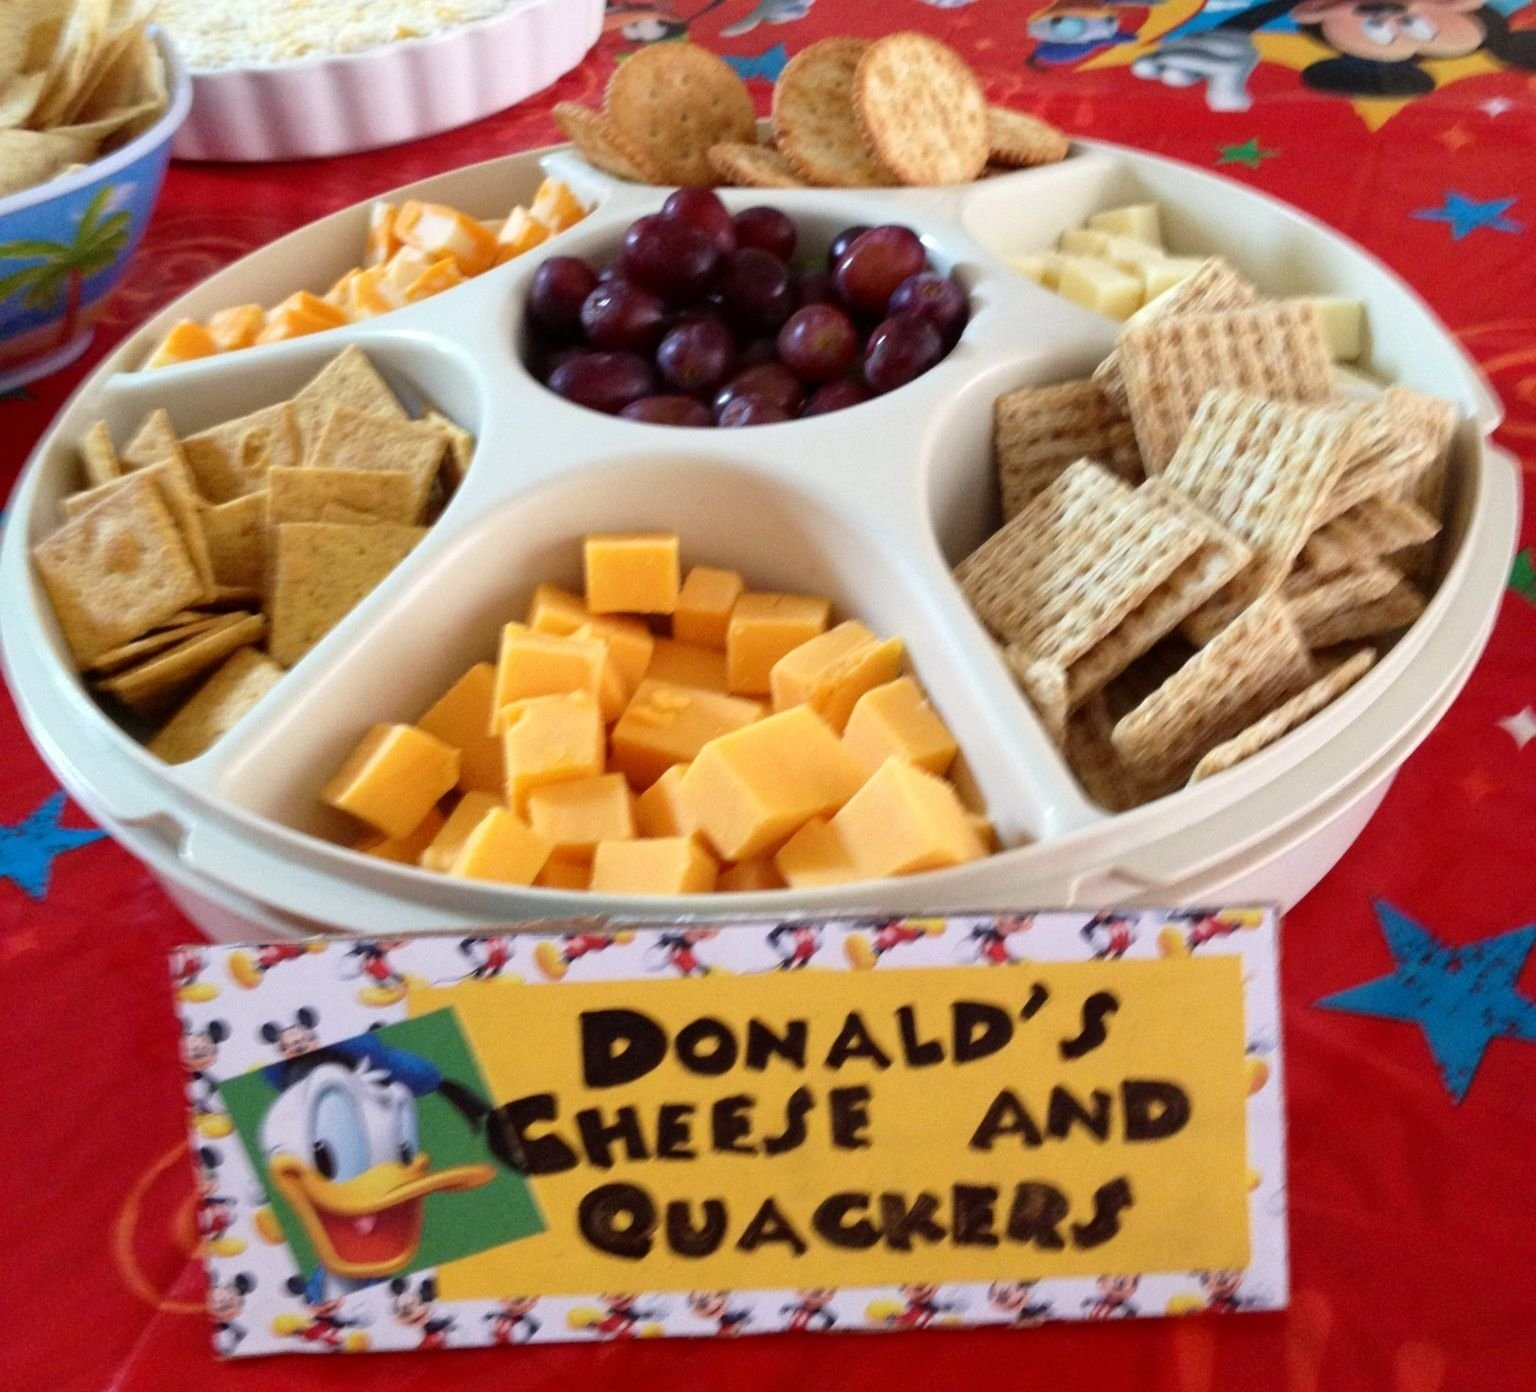 10 Ideal Mickey Mouse Birthday Party Food Ideas donalds cheese and quackers kids party pinterest birthday 2 2021